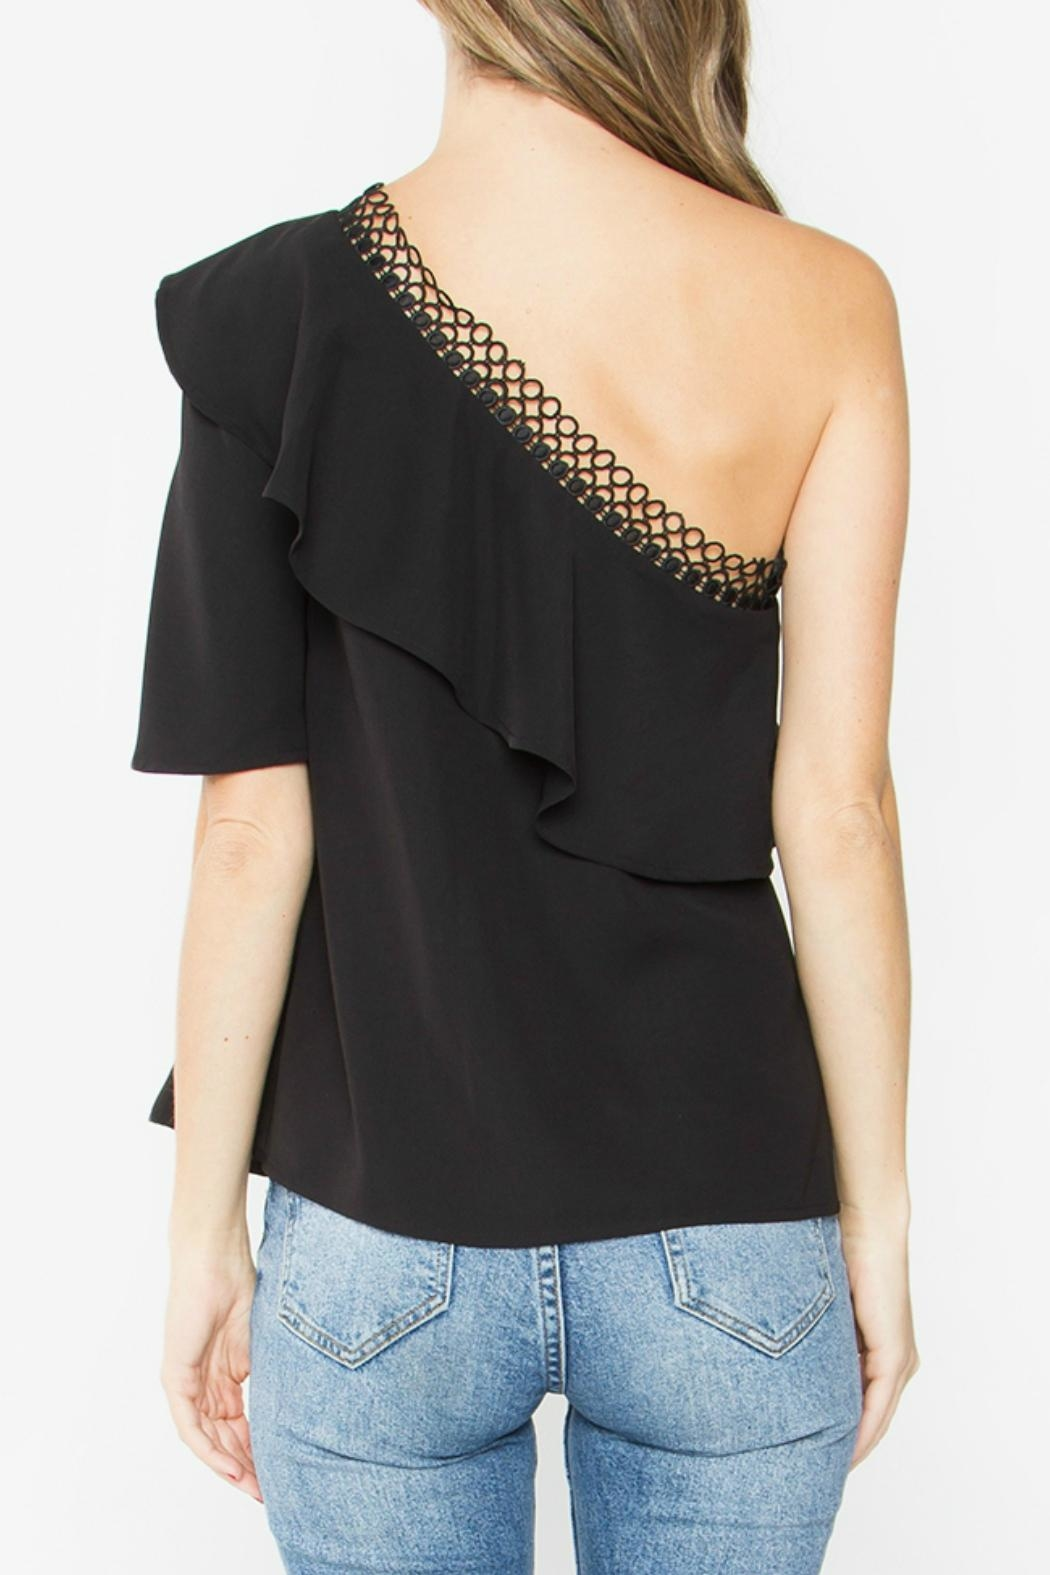 Sugar Lips Black One-Shoulder Top - Front Full Image